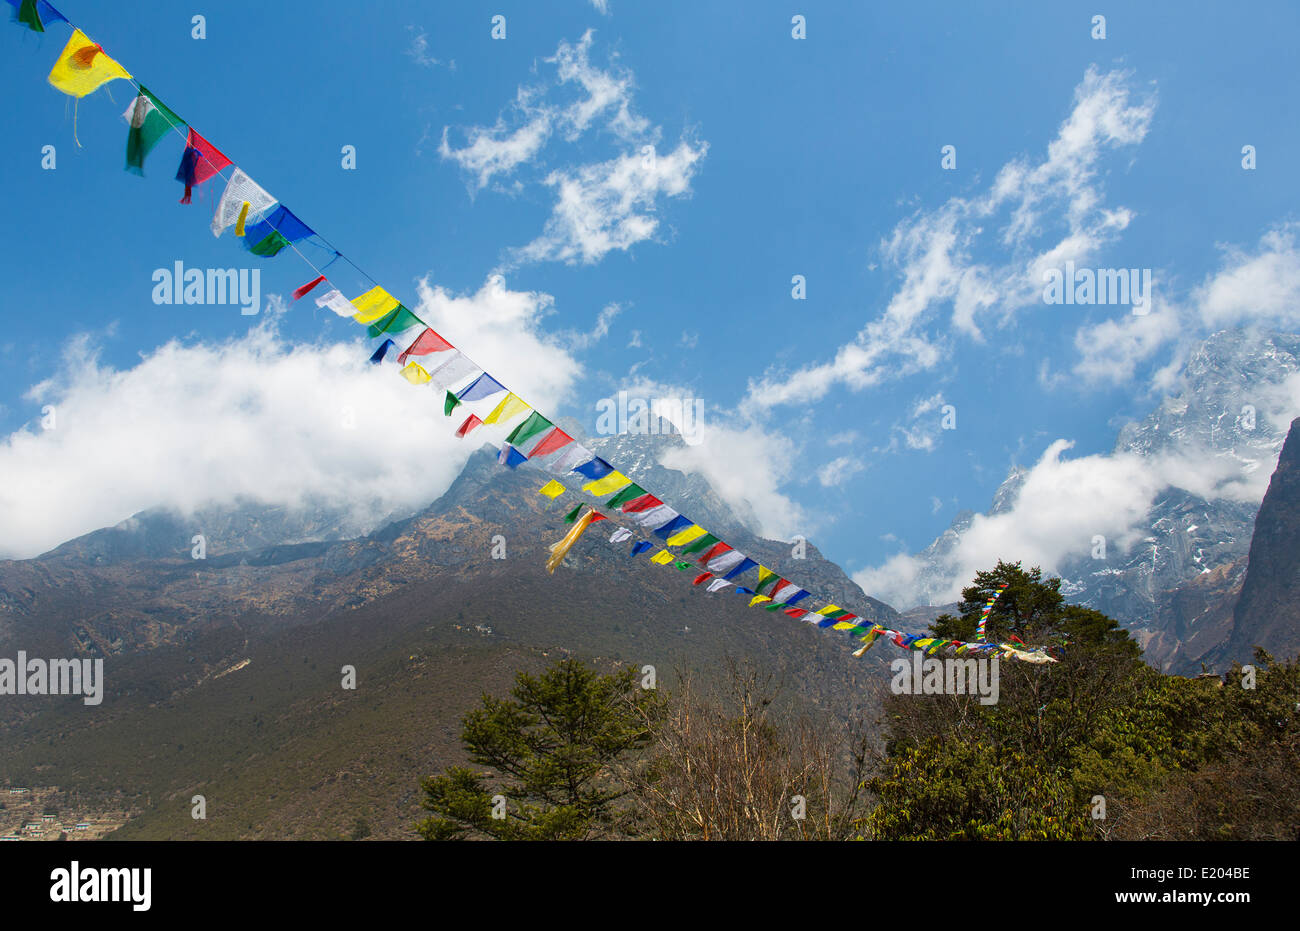 Nepal Prayer flags fluttering in the wind with the Himalayas behind them Solukhumbu. - Stock Image